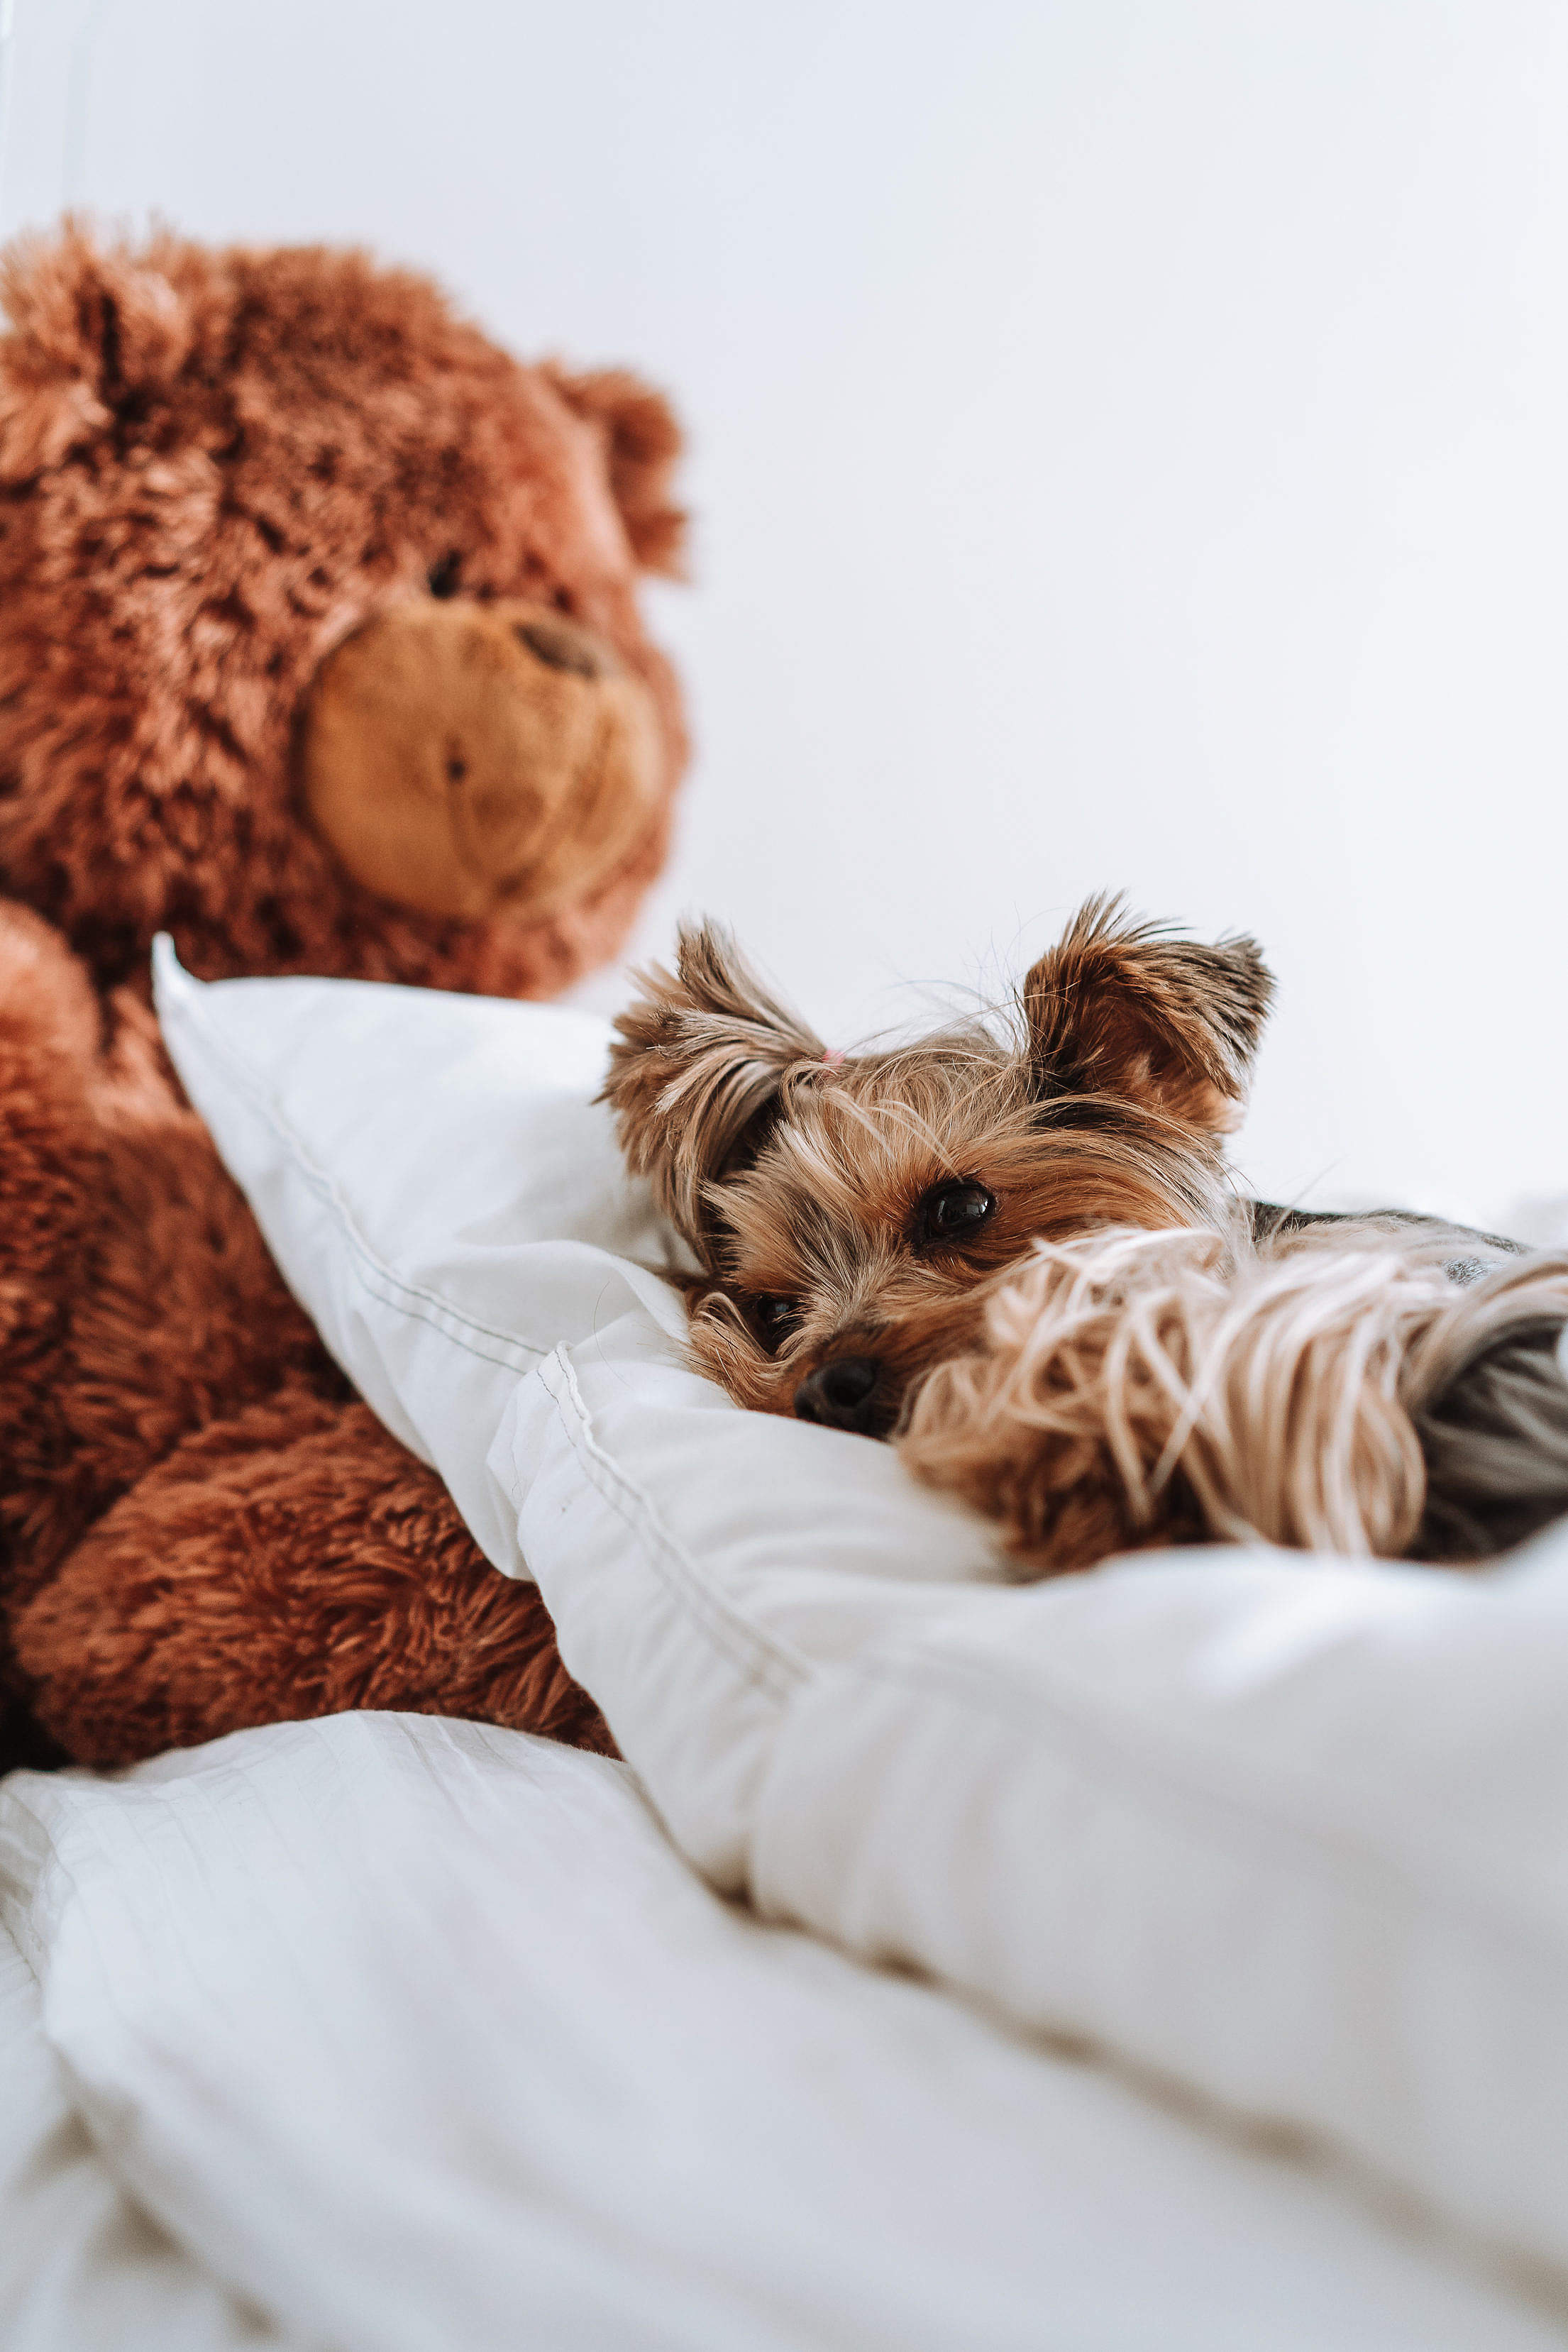 A Dog Lying on a Large Pillow in The Bed Free Stock Photo